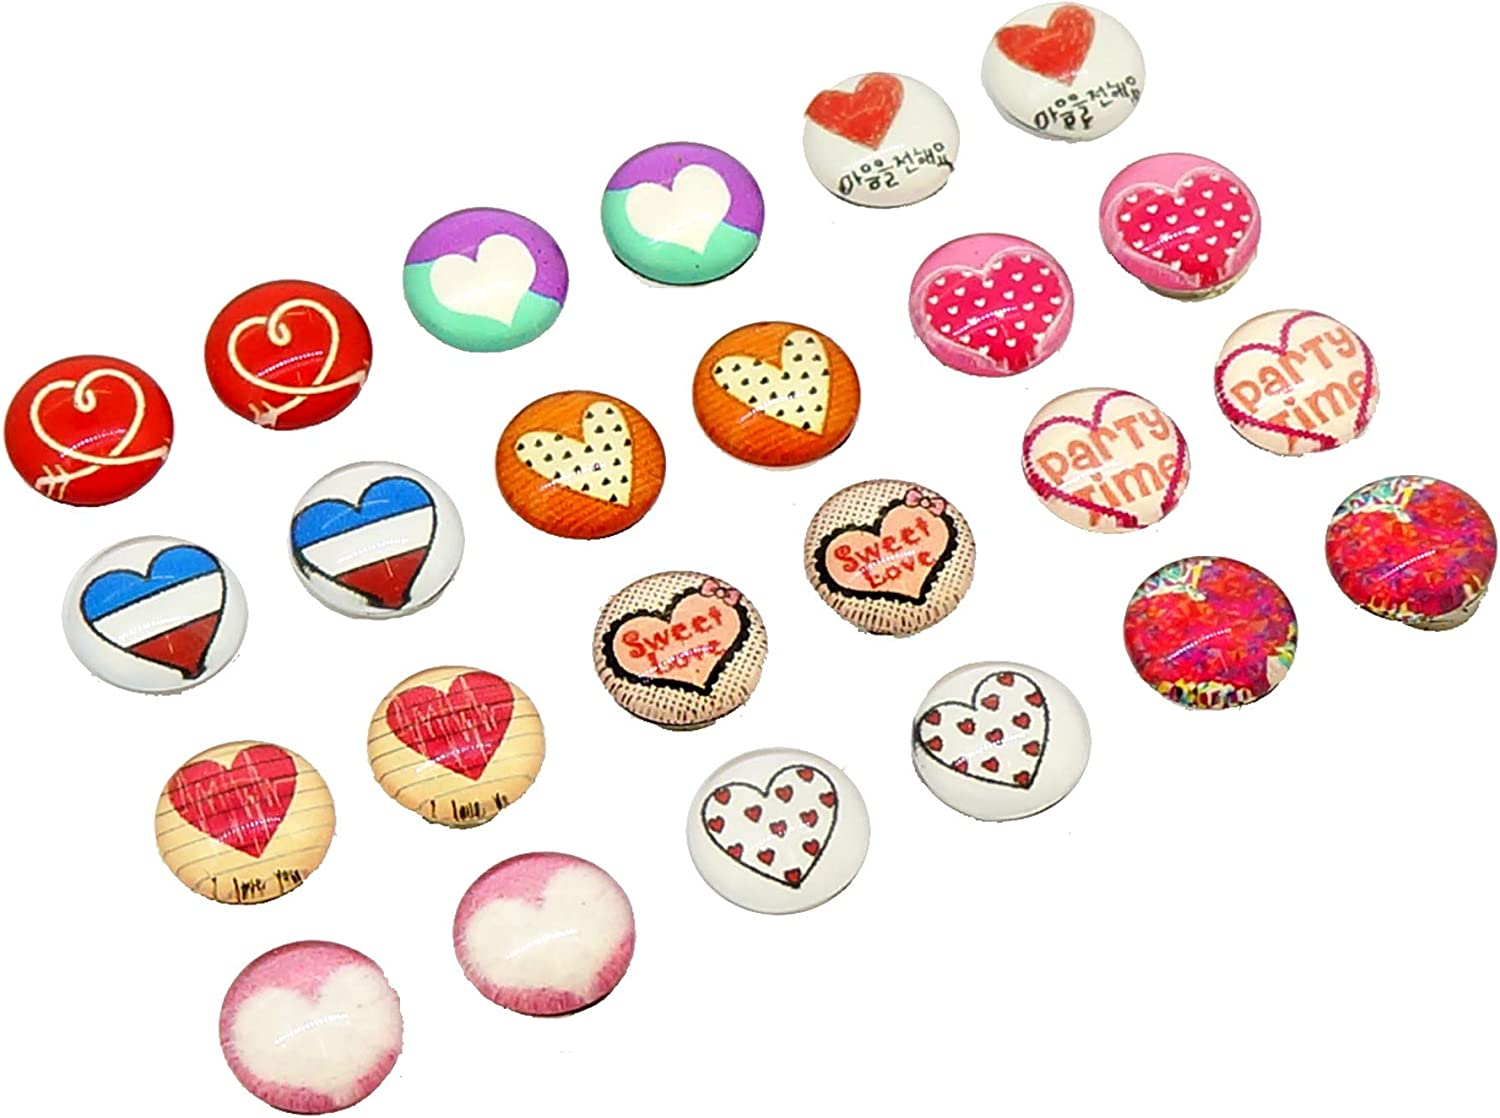 Glass Dome Lovely Heart Pattern Magnetic Clip-on Earrings, Mix of 12 Styles for non piercing ear, Pack of 12 Pairs